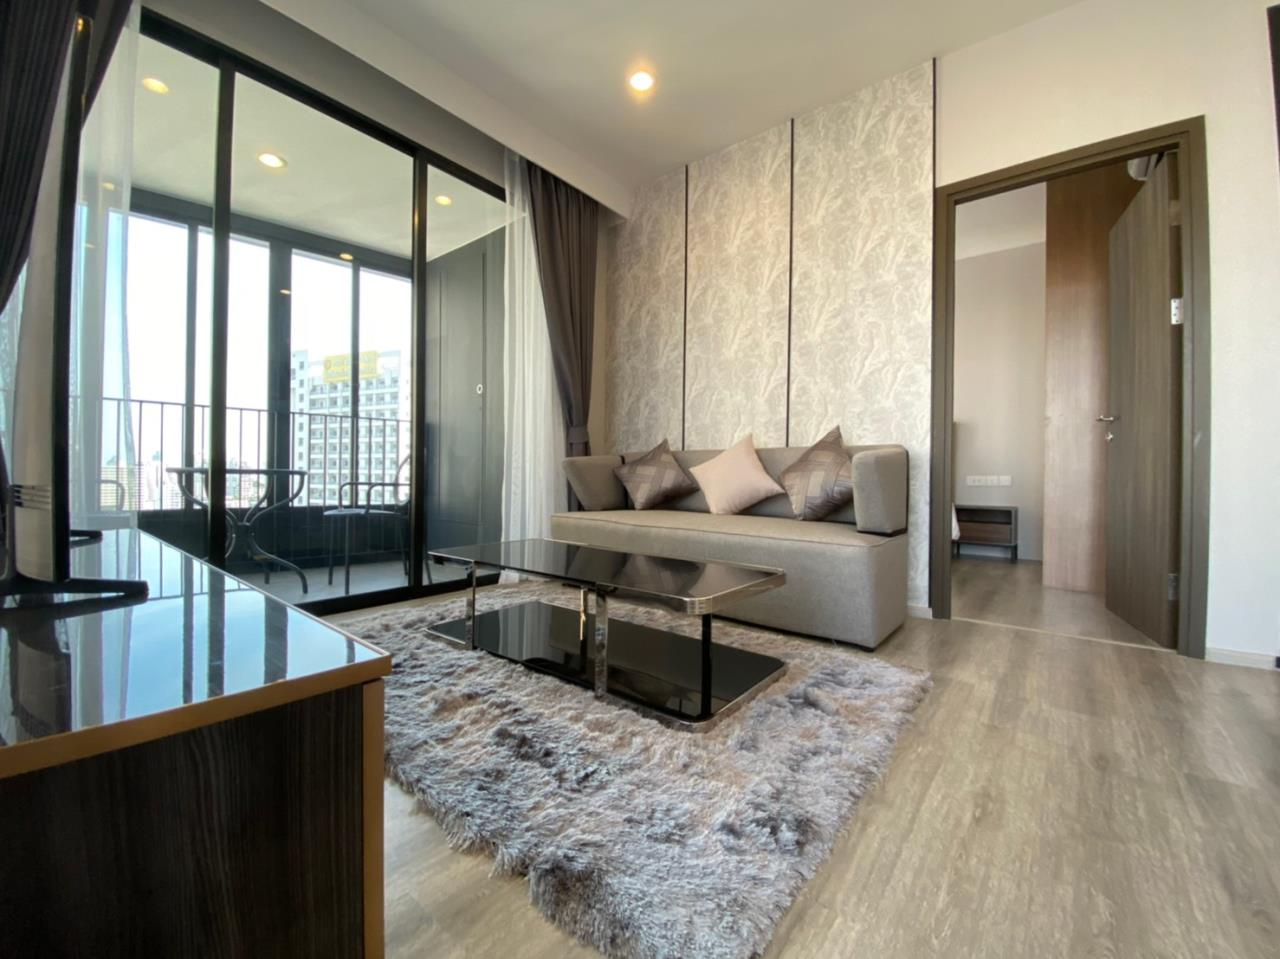 Su Agent Co.,Ltd Agency's BS074 Ideo Mobi Asoke 55 sq.m 2 Bedroom for rent 41,000 Baht/Month 7